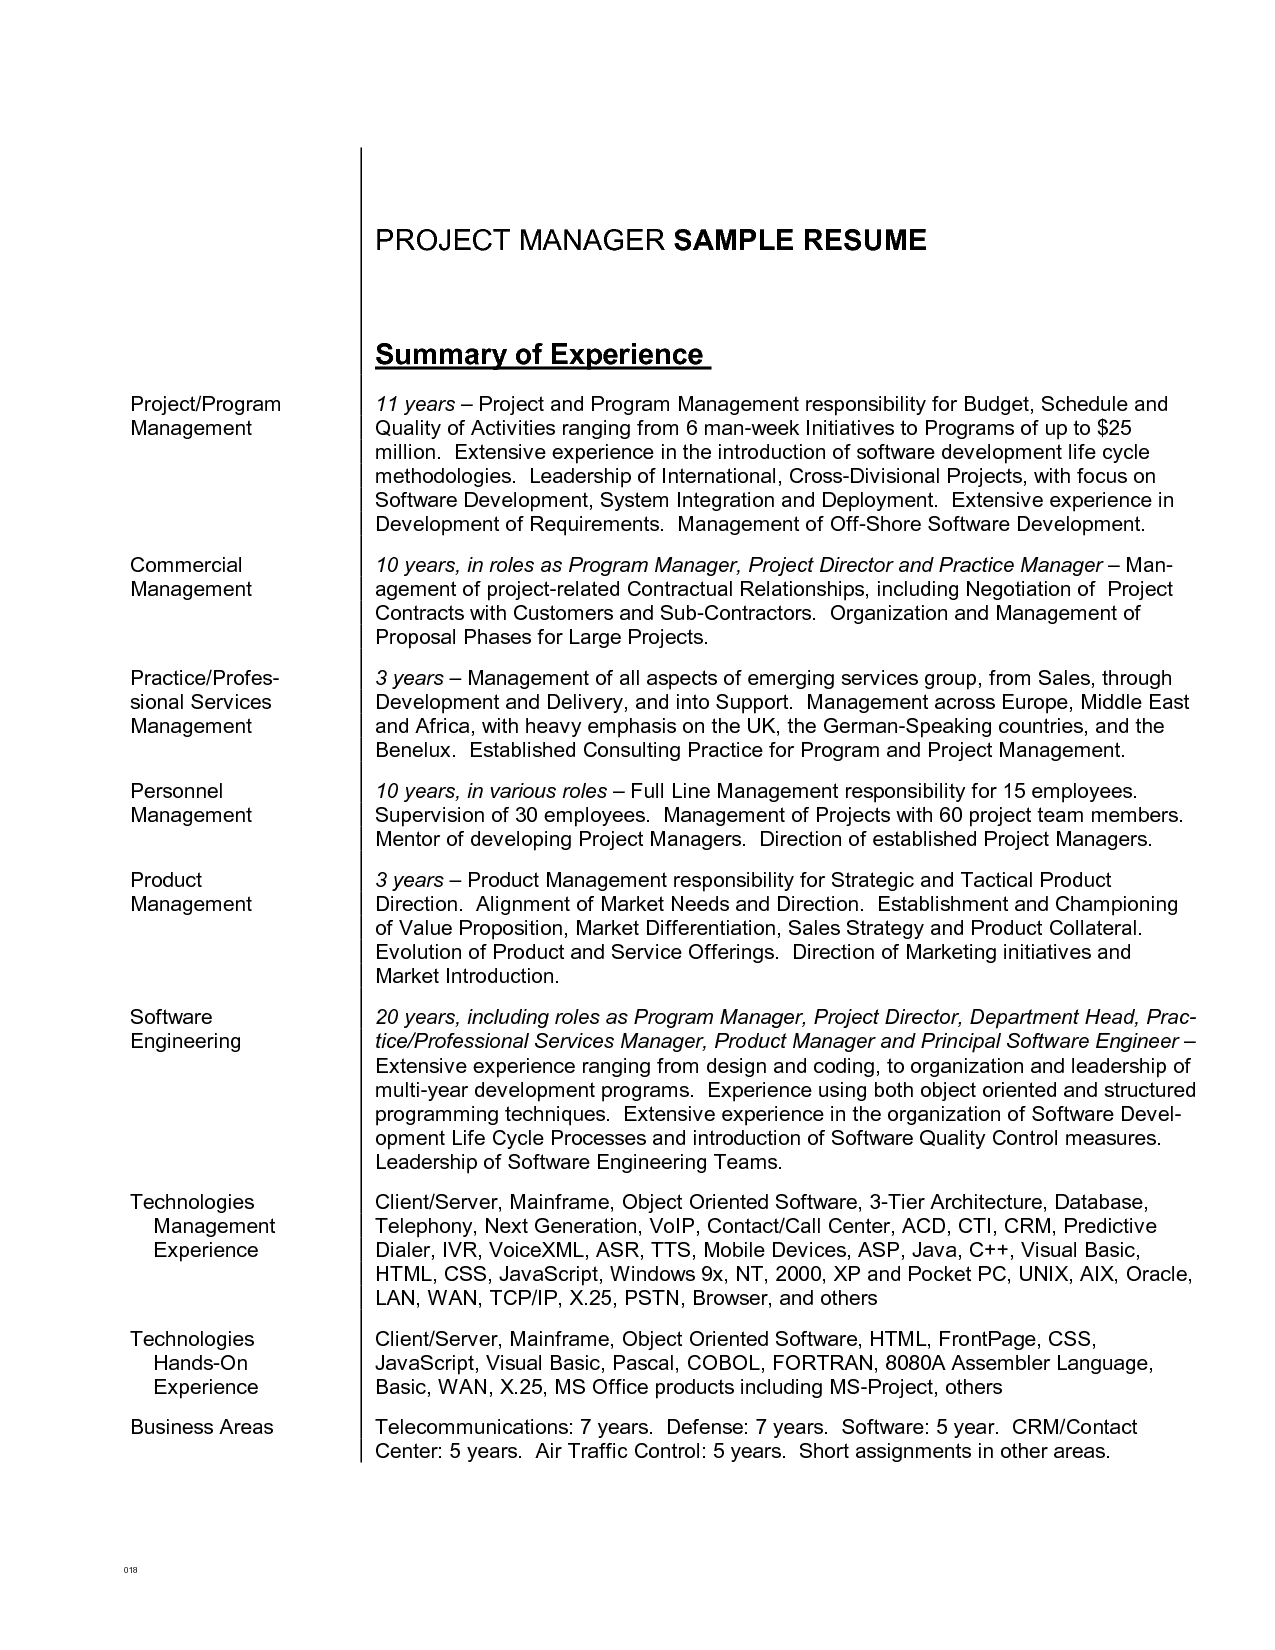 Summary For Resume Example Cover Letter Product Design Engineer Automotive Designer Example